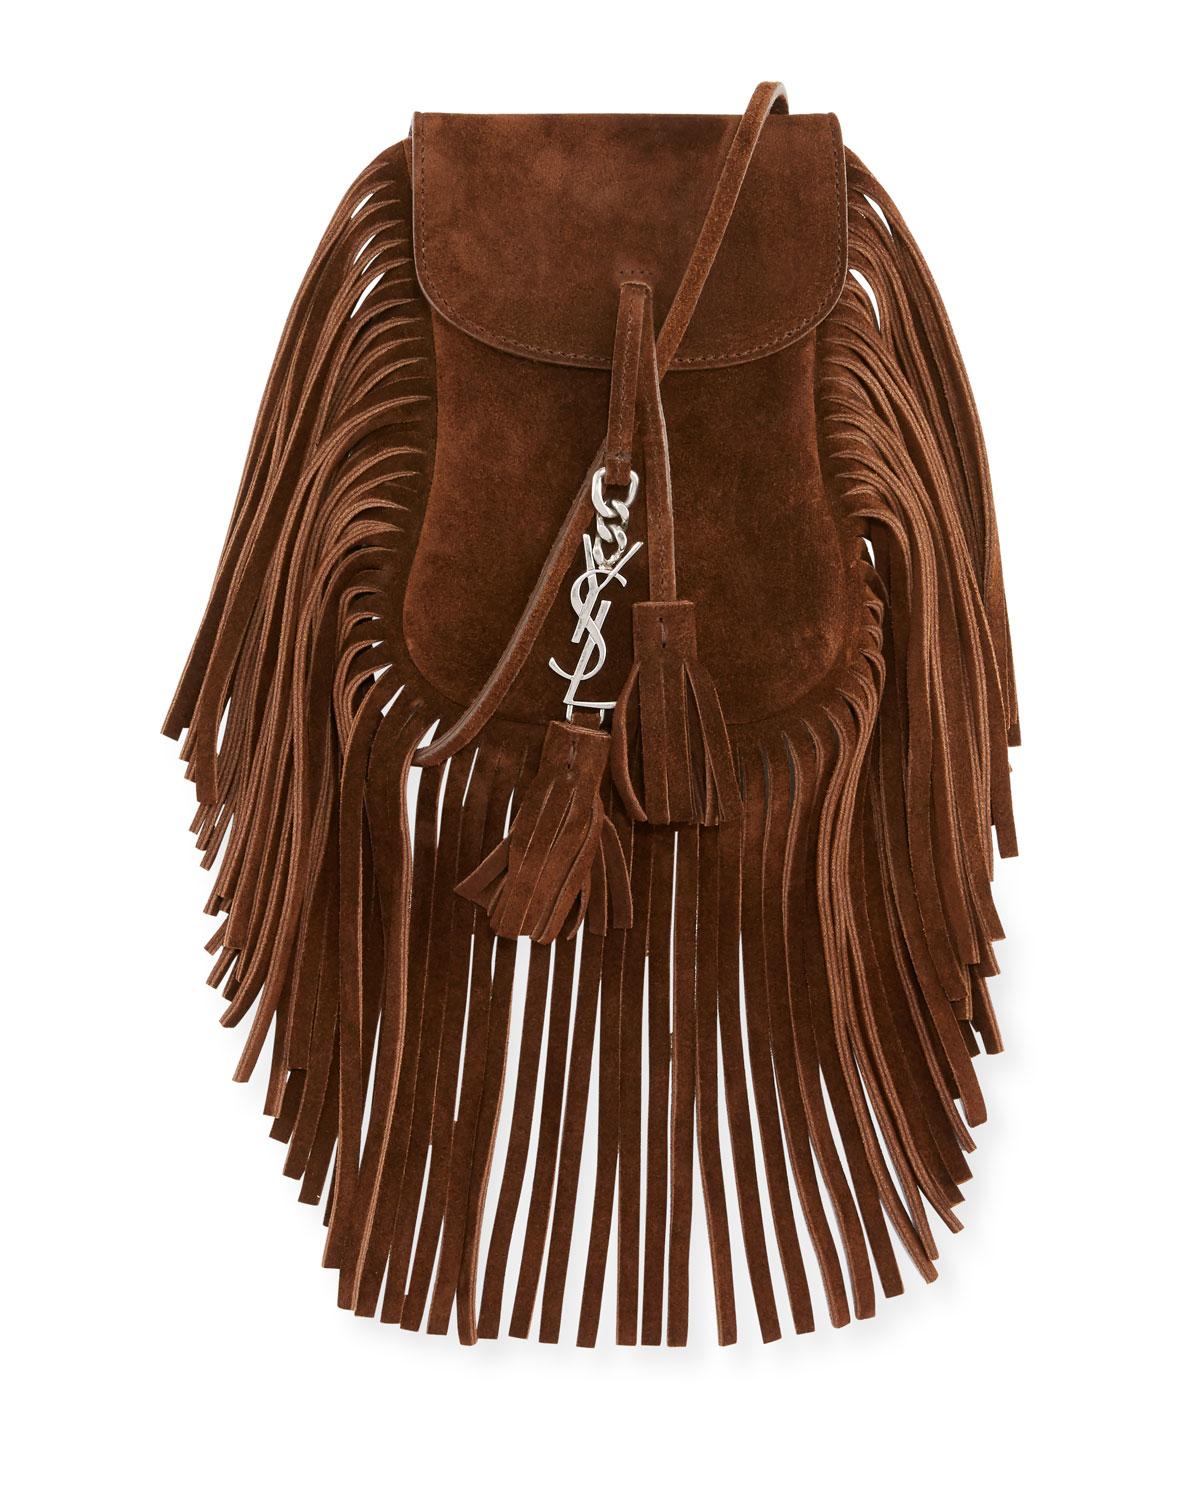 Find great deals on eBay for leather bag with fringe. Shop with confidence.